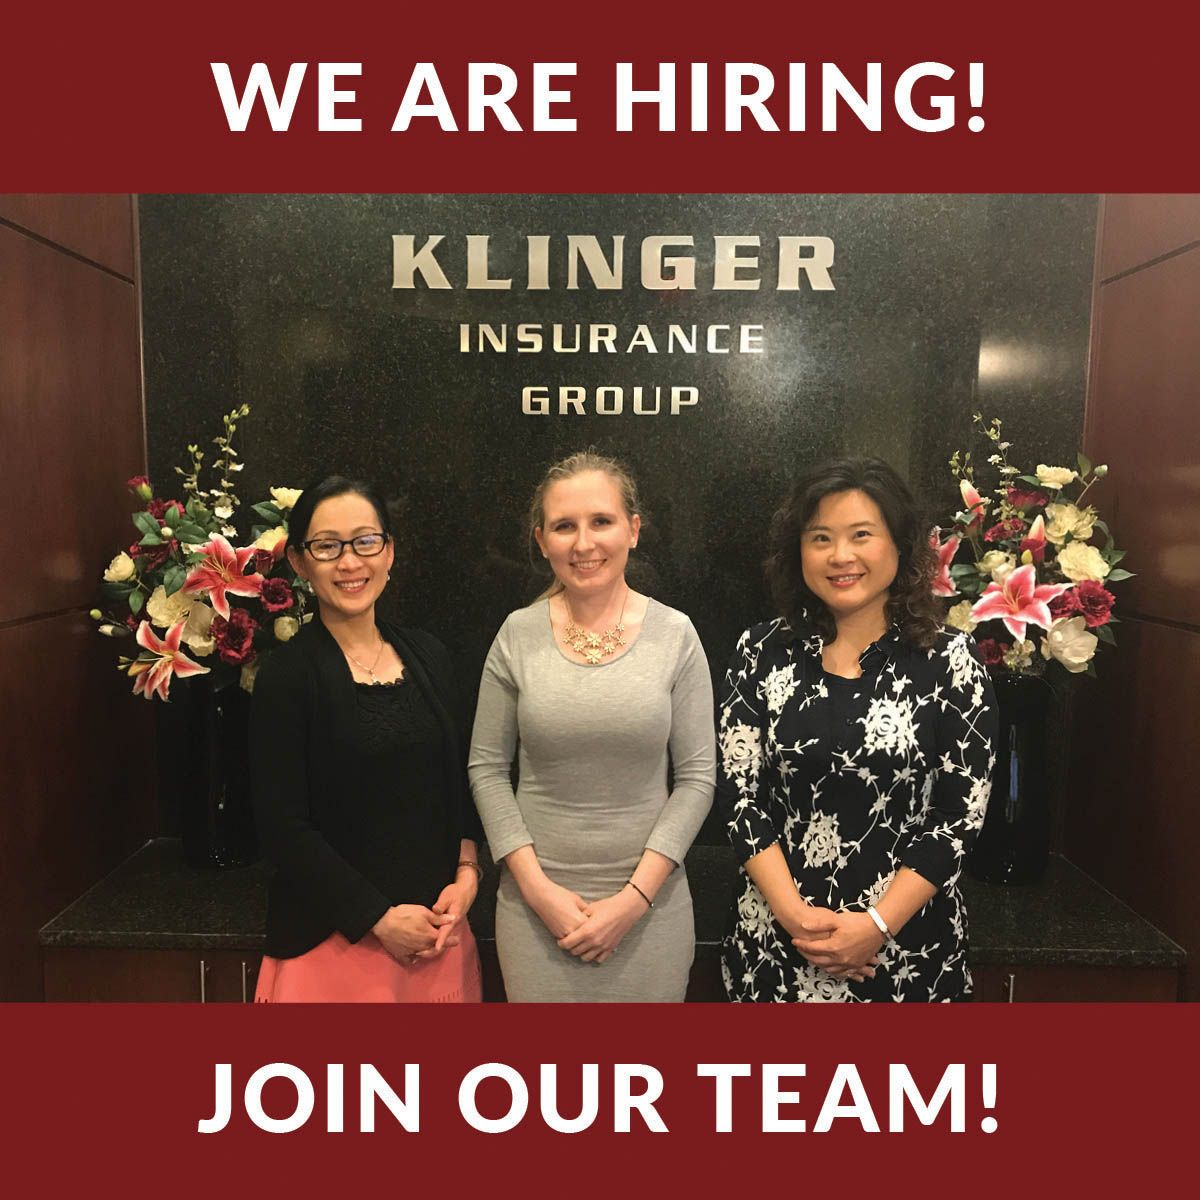 KIG is hiring! We are searching for an experienced